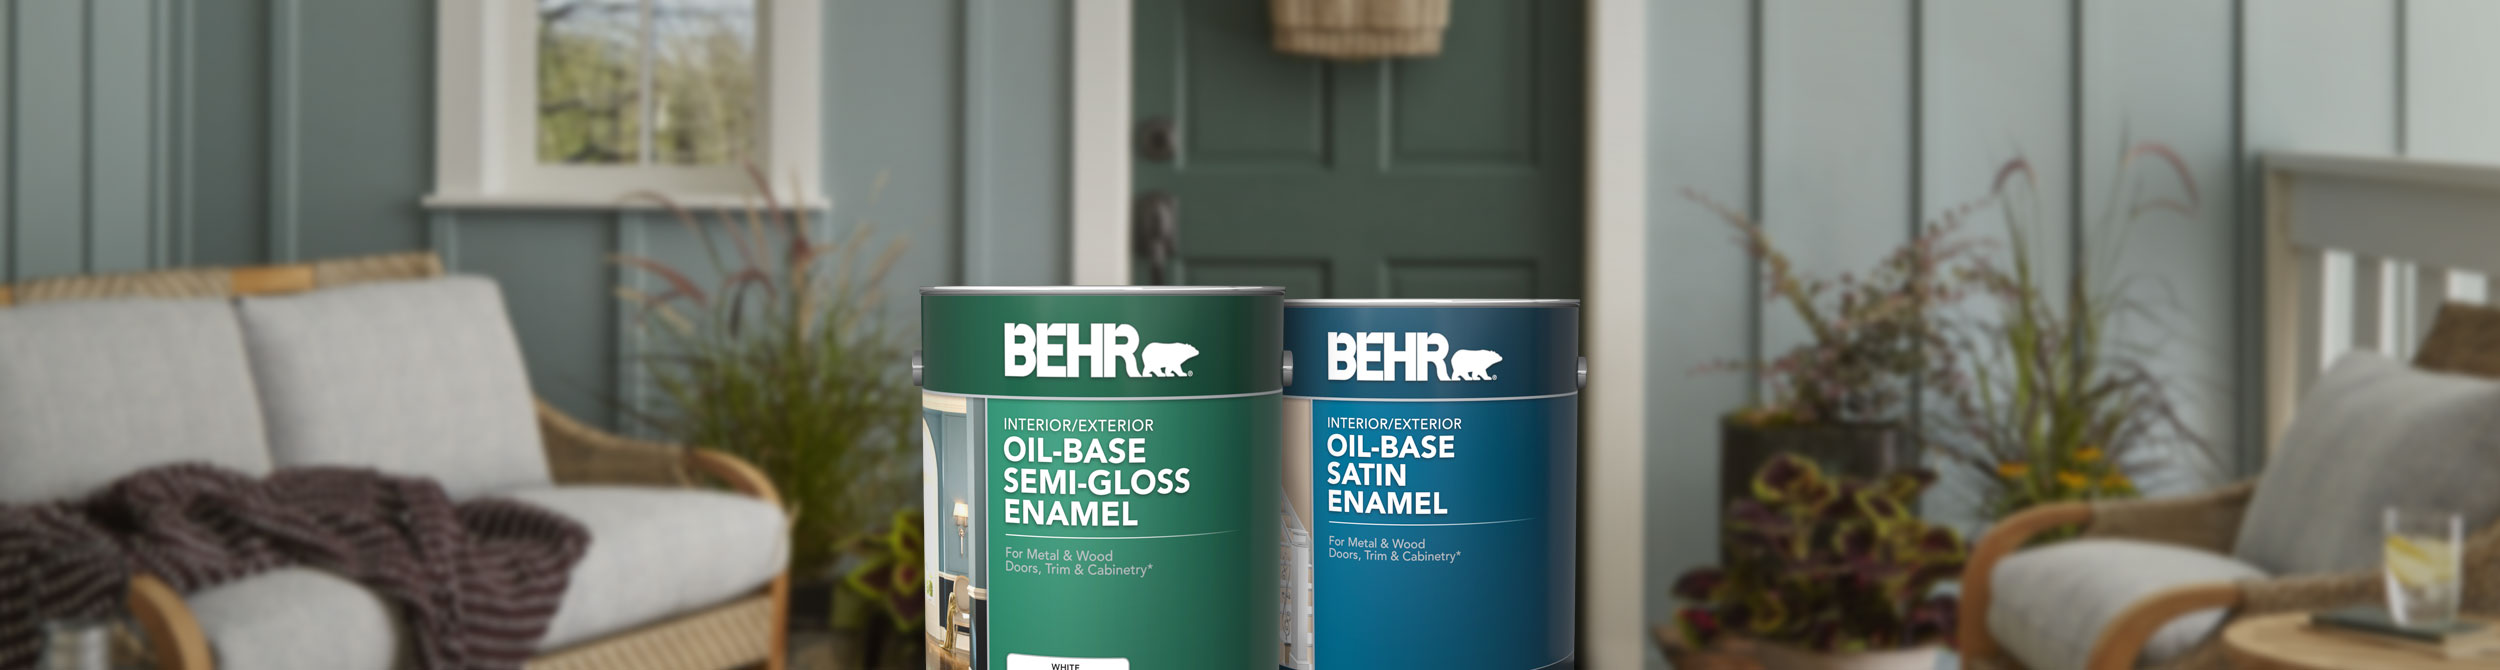 2 cans of Behr Oil Based Specialty Pant in front of door.